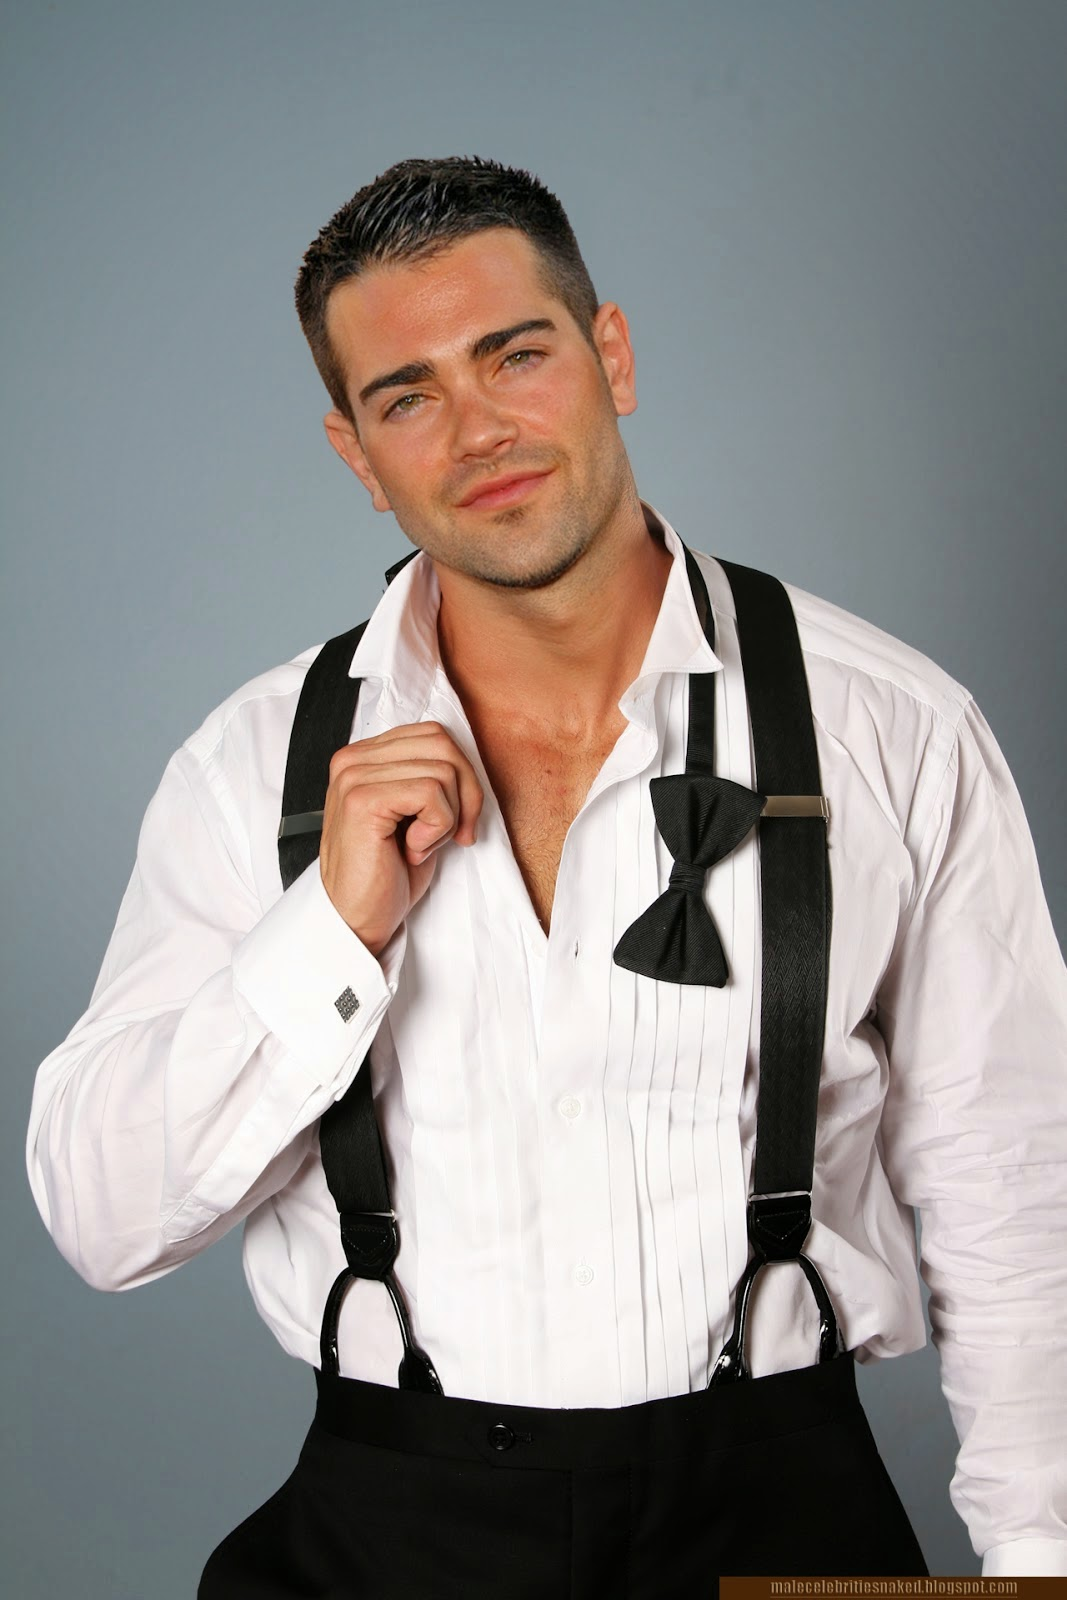 from Maison jesse metcalfe staring in gay porn